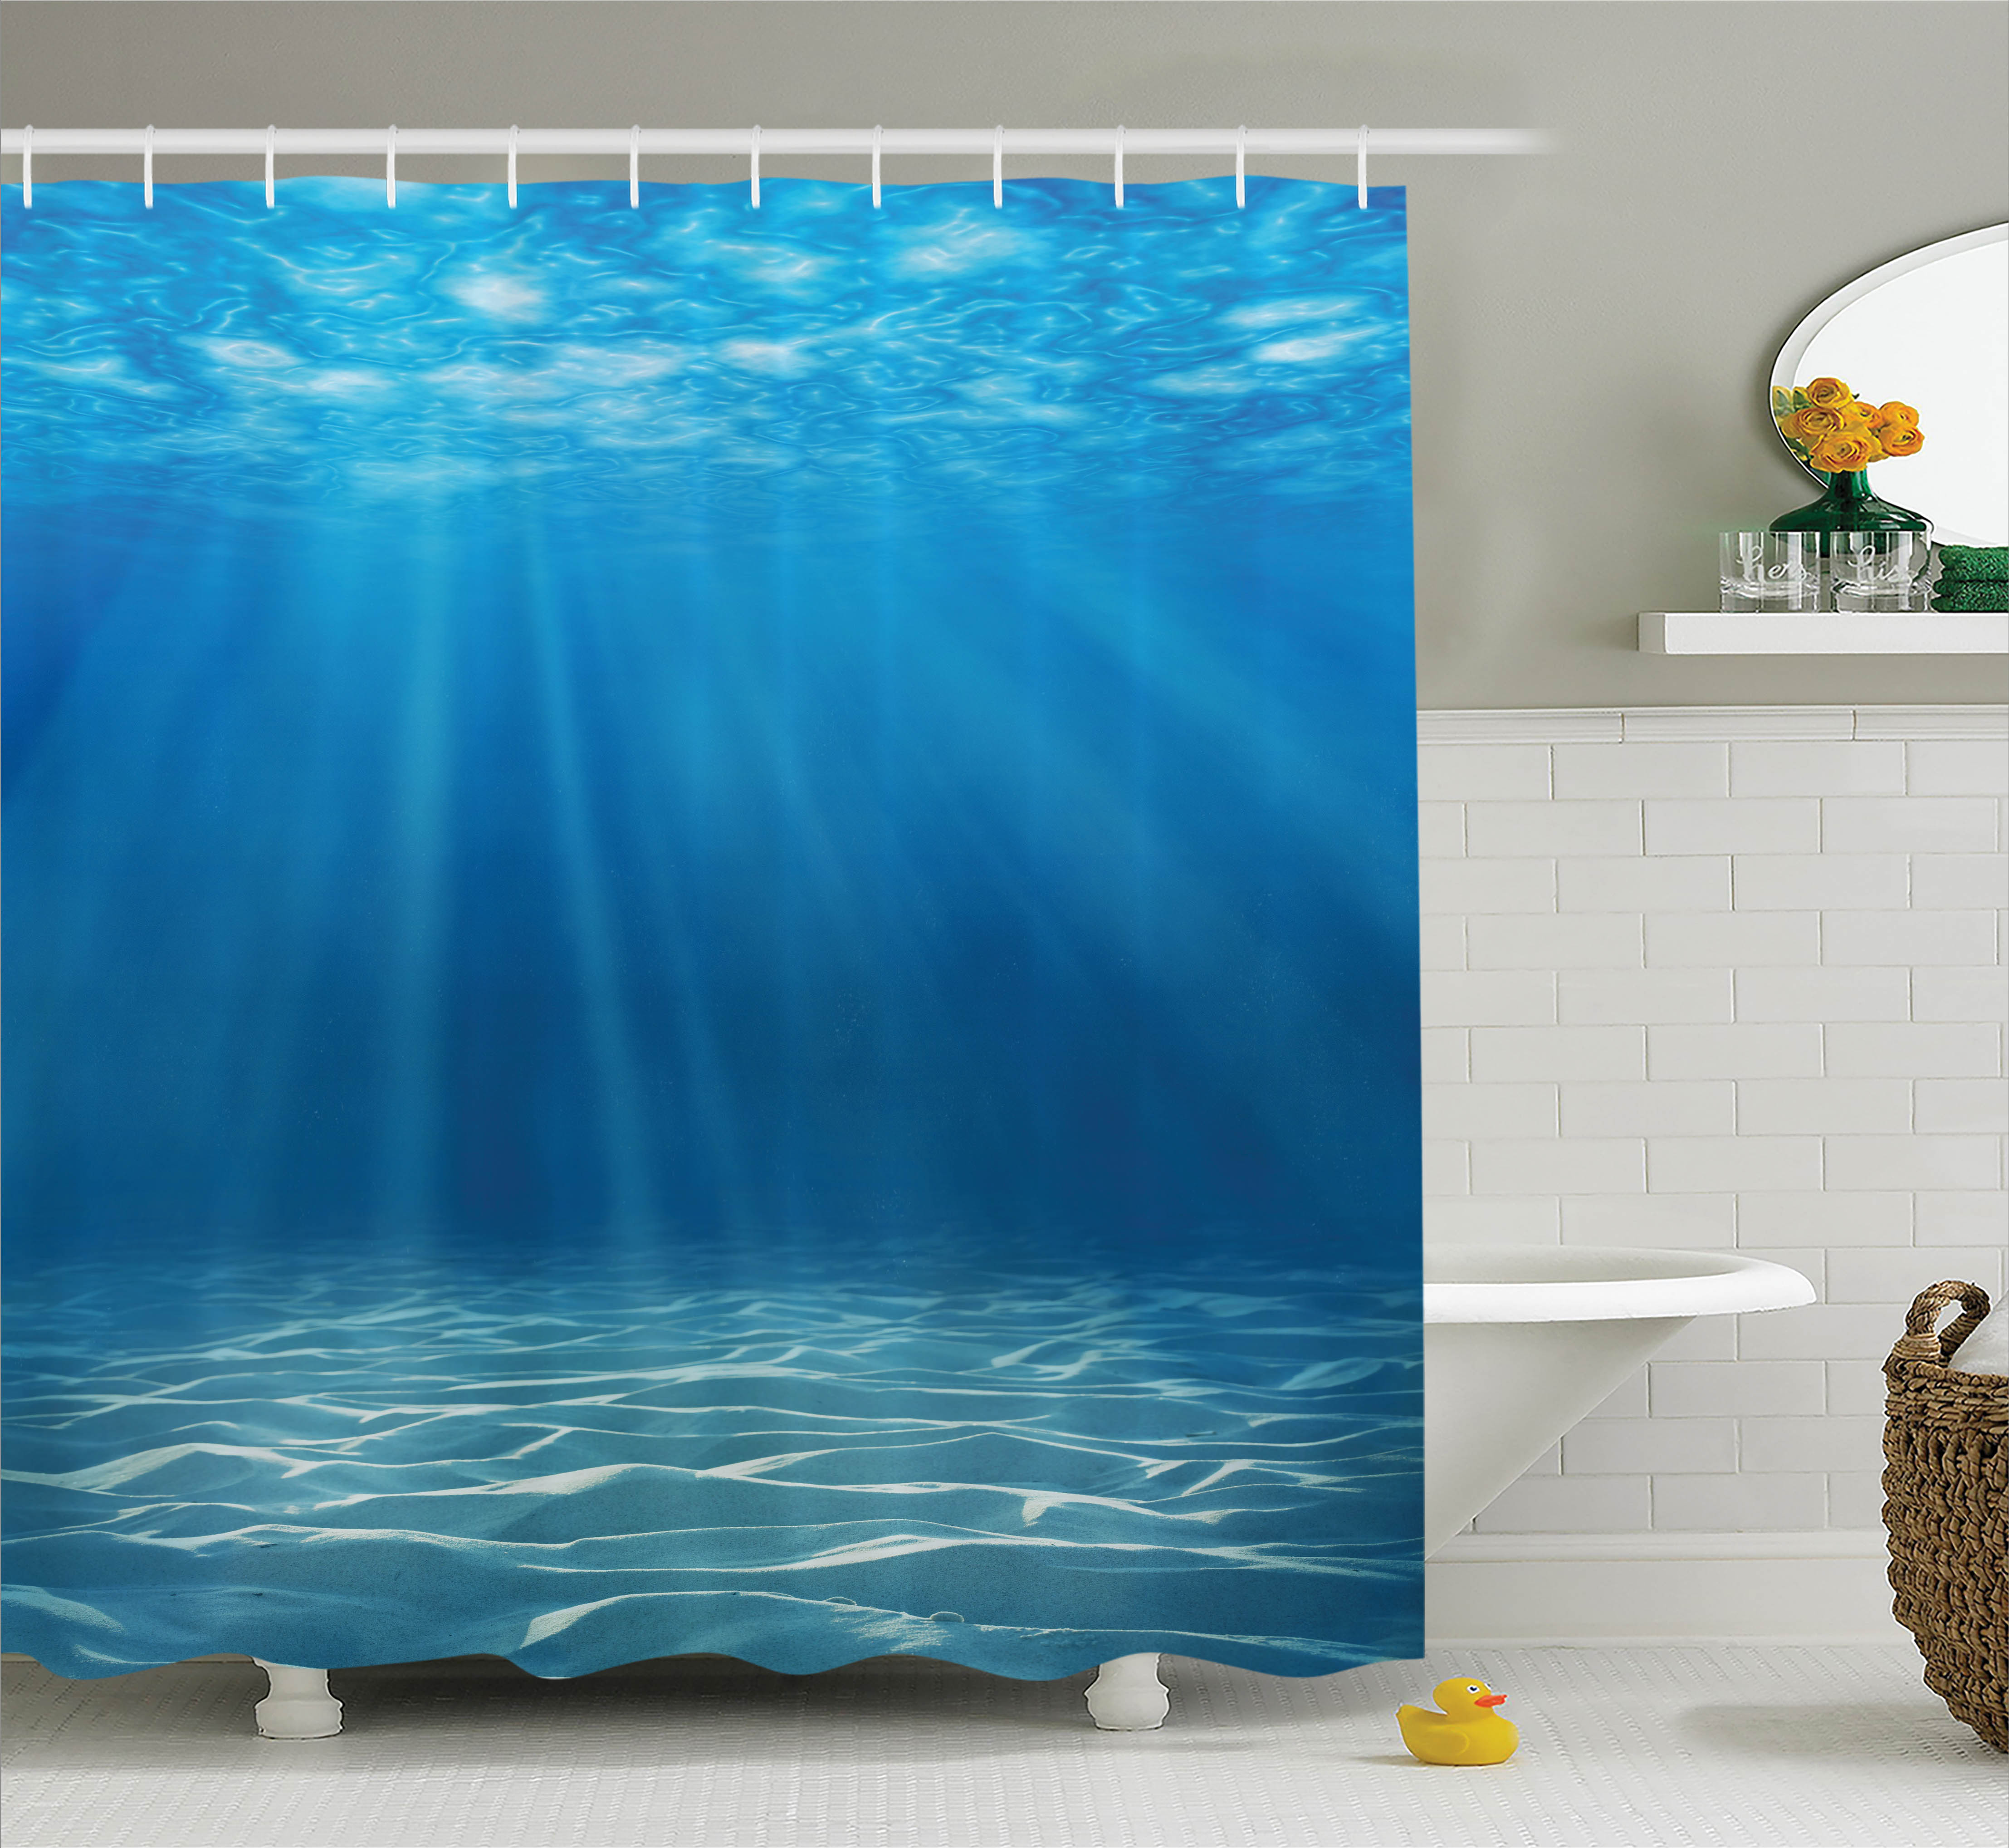 Shower Curtain Set, Sunlight Bursting into Deep Under Sea Wilderness Scenery Waterscape Picture Print, Bathroom Decor,  Blue Turquoise, by Ambesonne